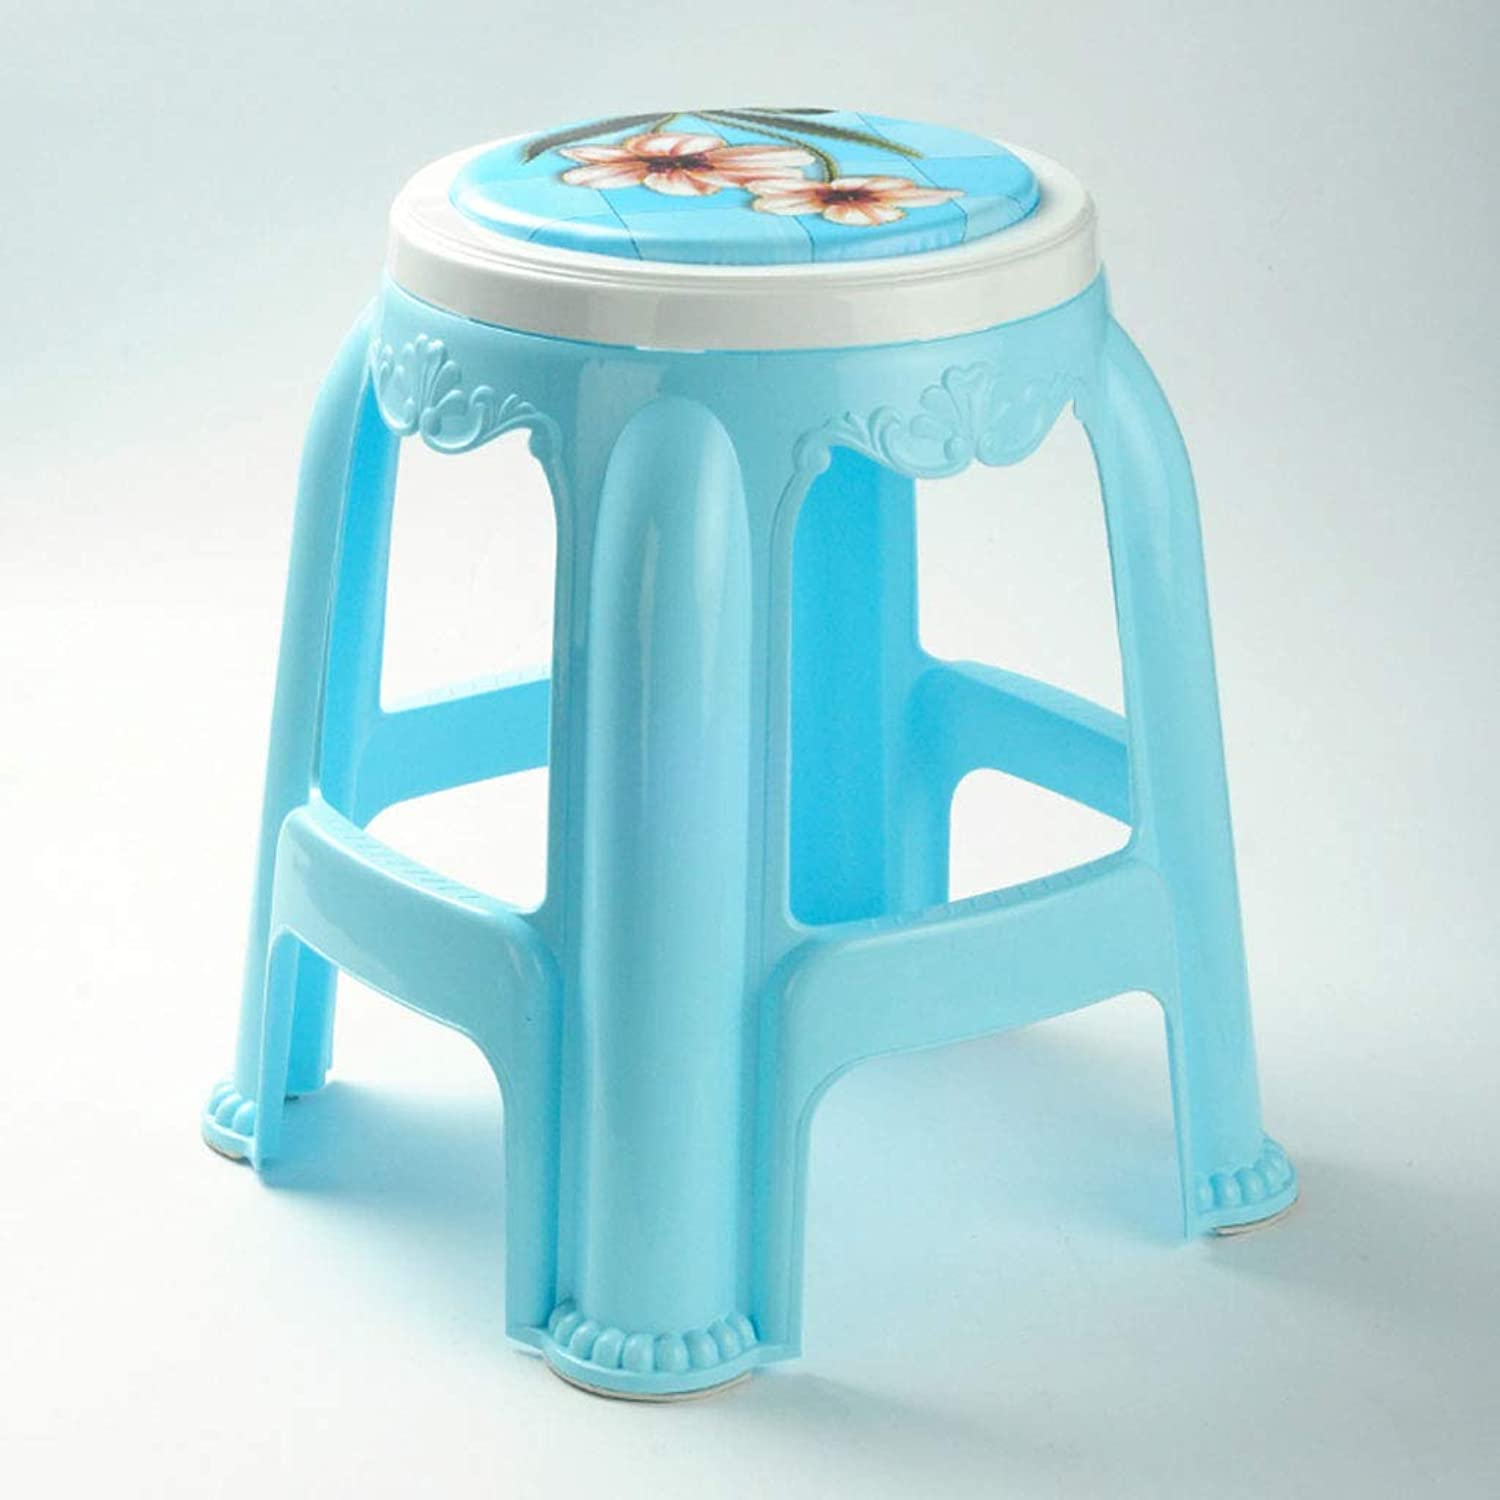 NJ STOOLS- Thick Plastic Stool Adult High Stool Dining Stool Home Bench (color   bluee, Size   31x31x47cm)